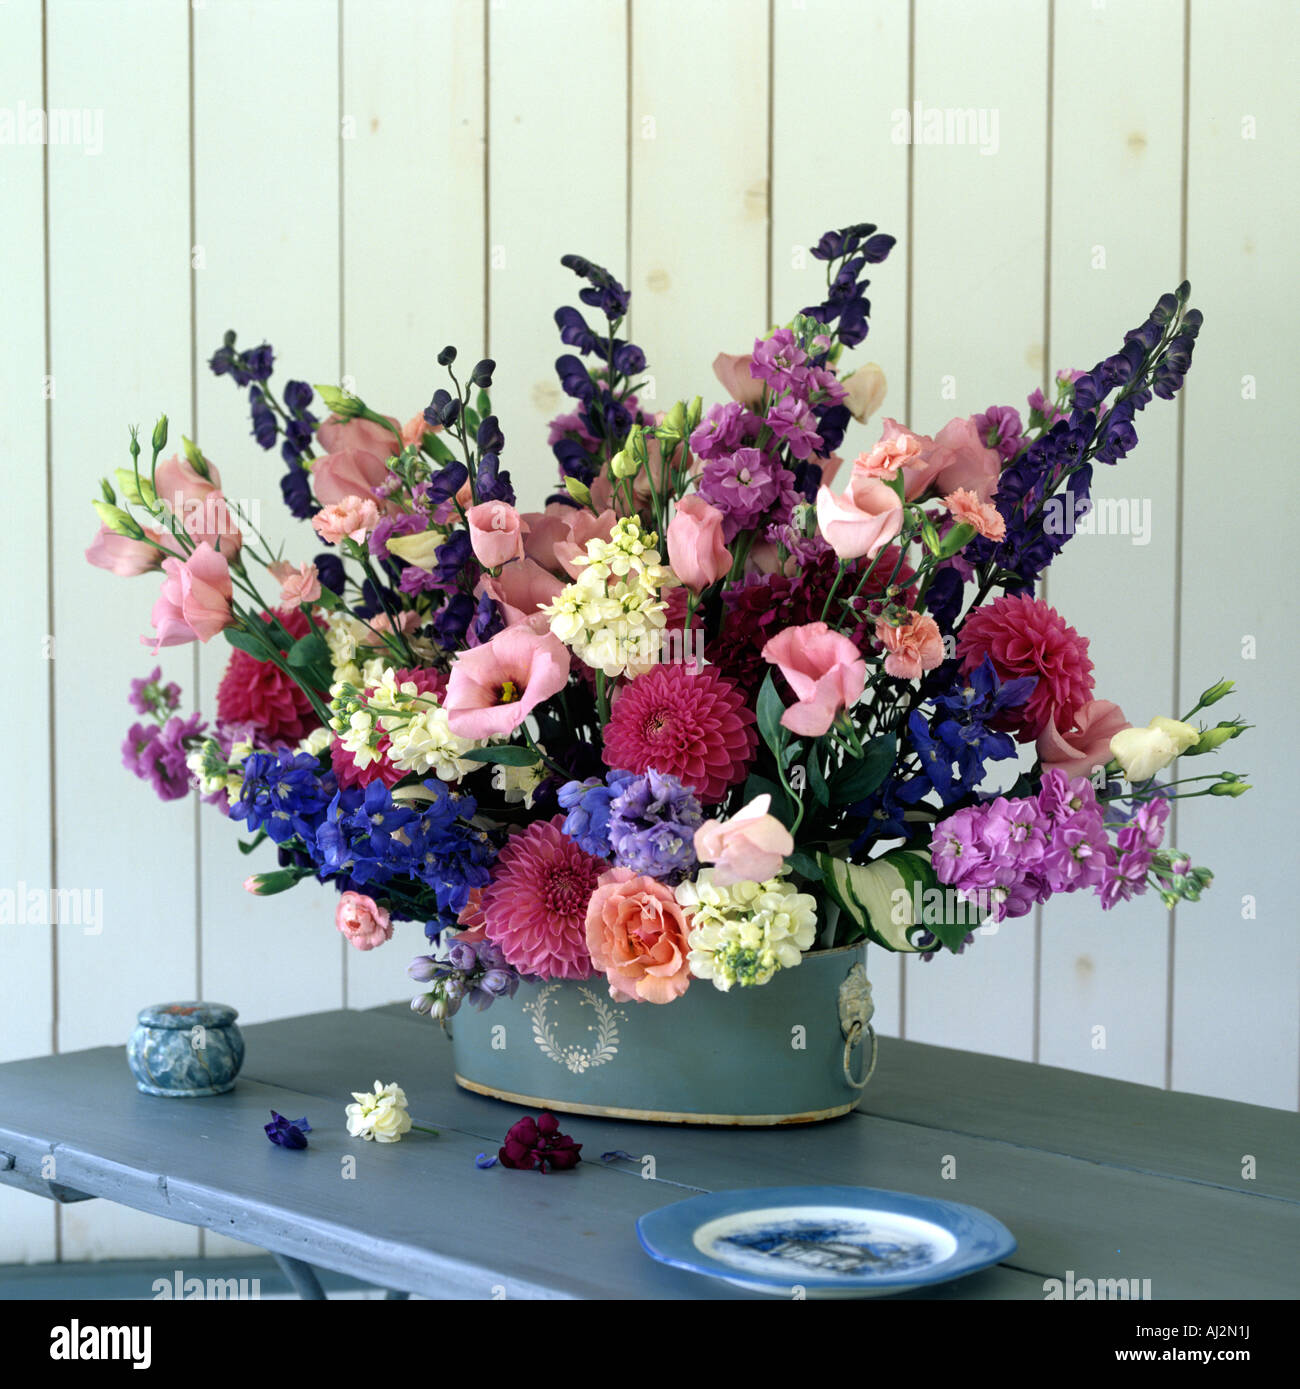 Flower arrangement  in blue pot with white cameo detail on wooden table - Stock Image